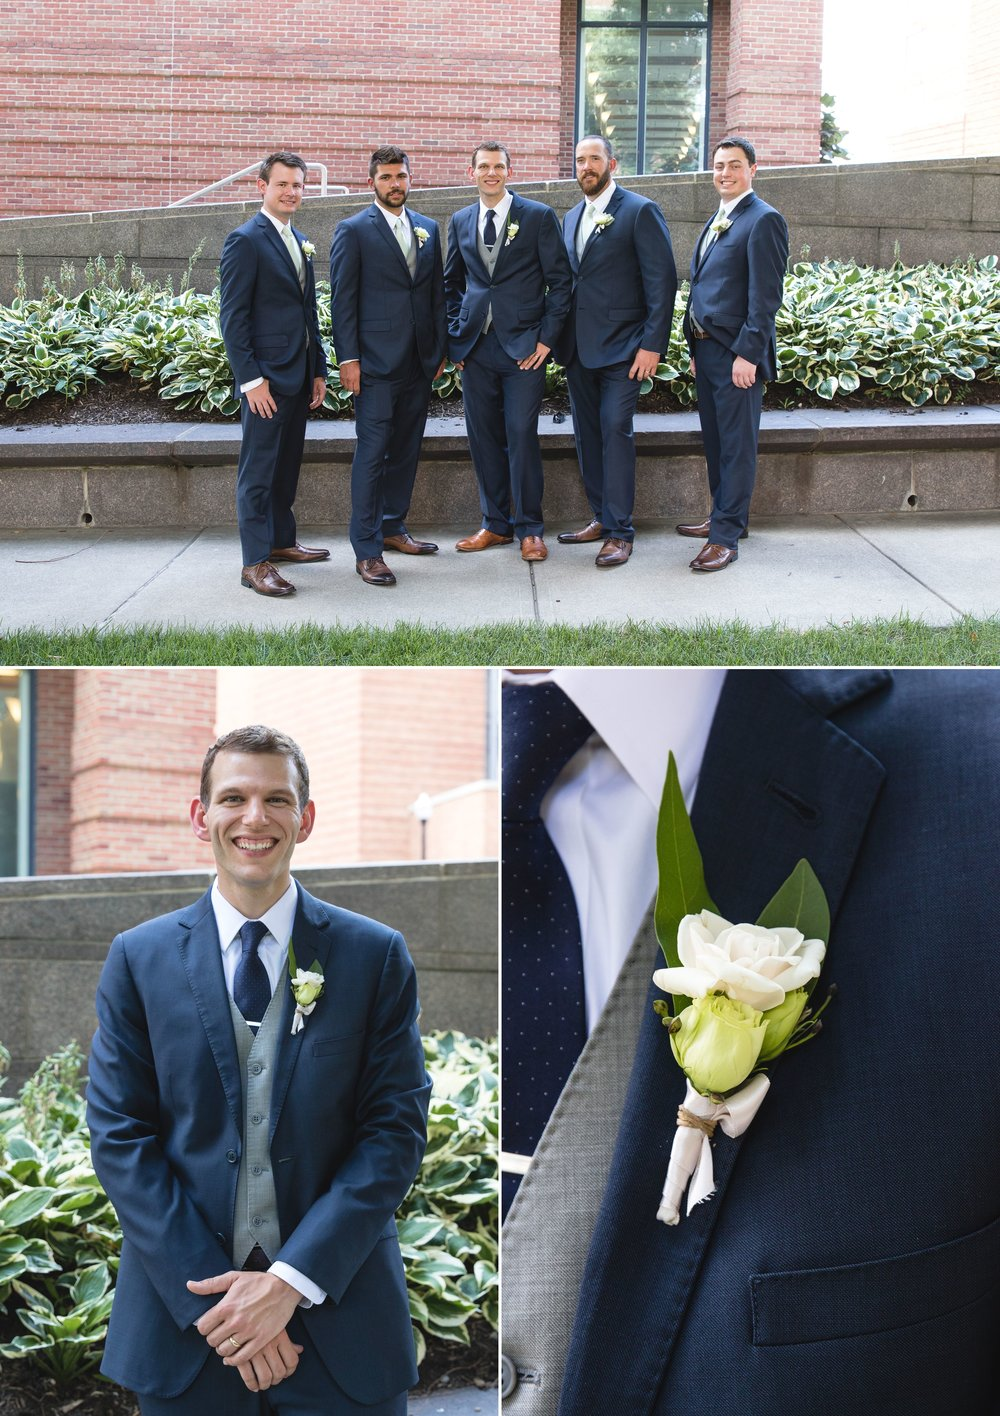 our-lady-of-victory-catholic-church-wedding-ceremony-the-blackwell-reception-portraits-columbus-ohio-muschlitz-photography-006.JPG